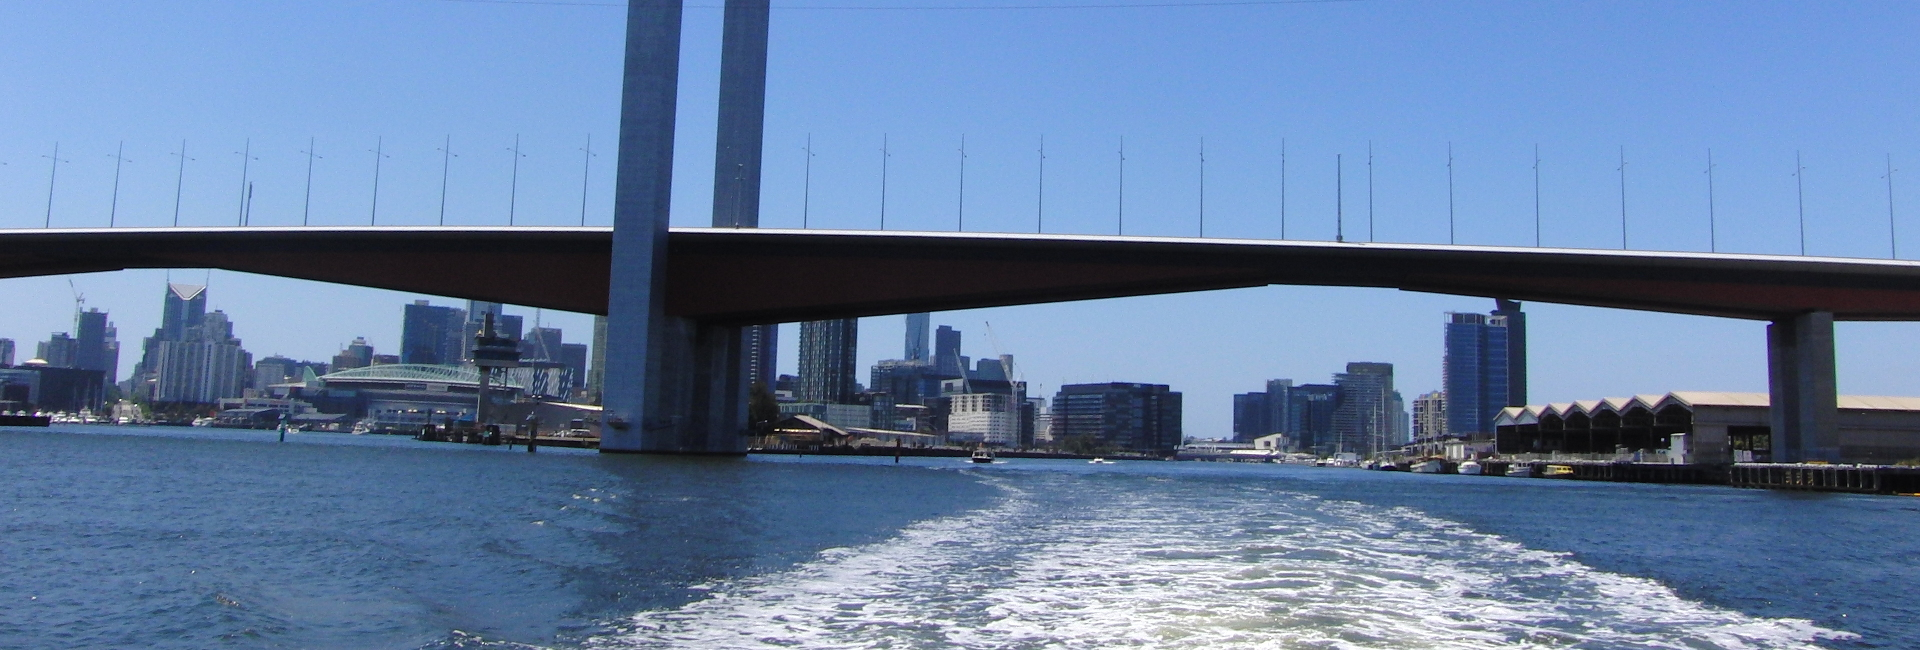 Cruise A: Port of Melbourne and Docklands: Downstream